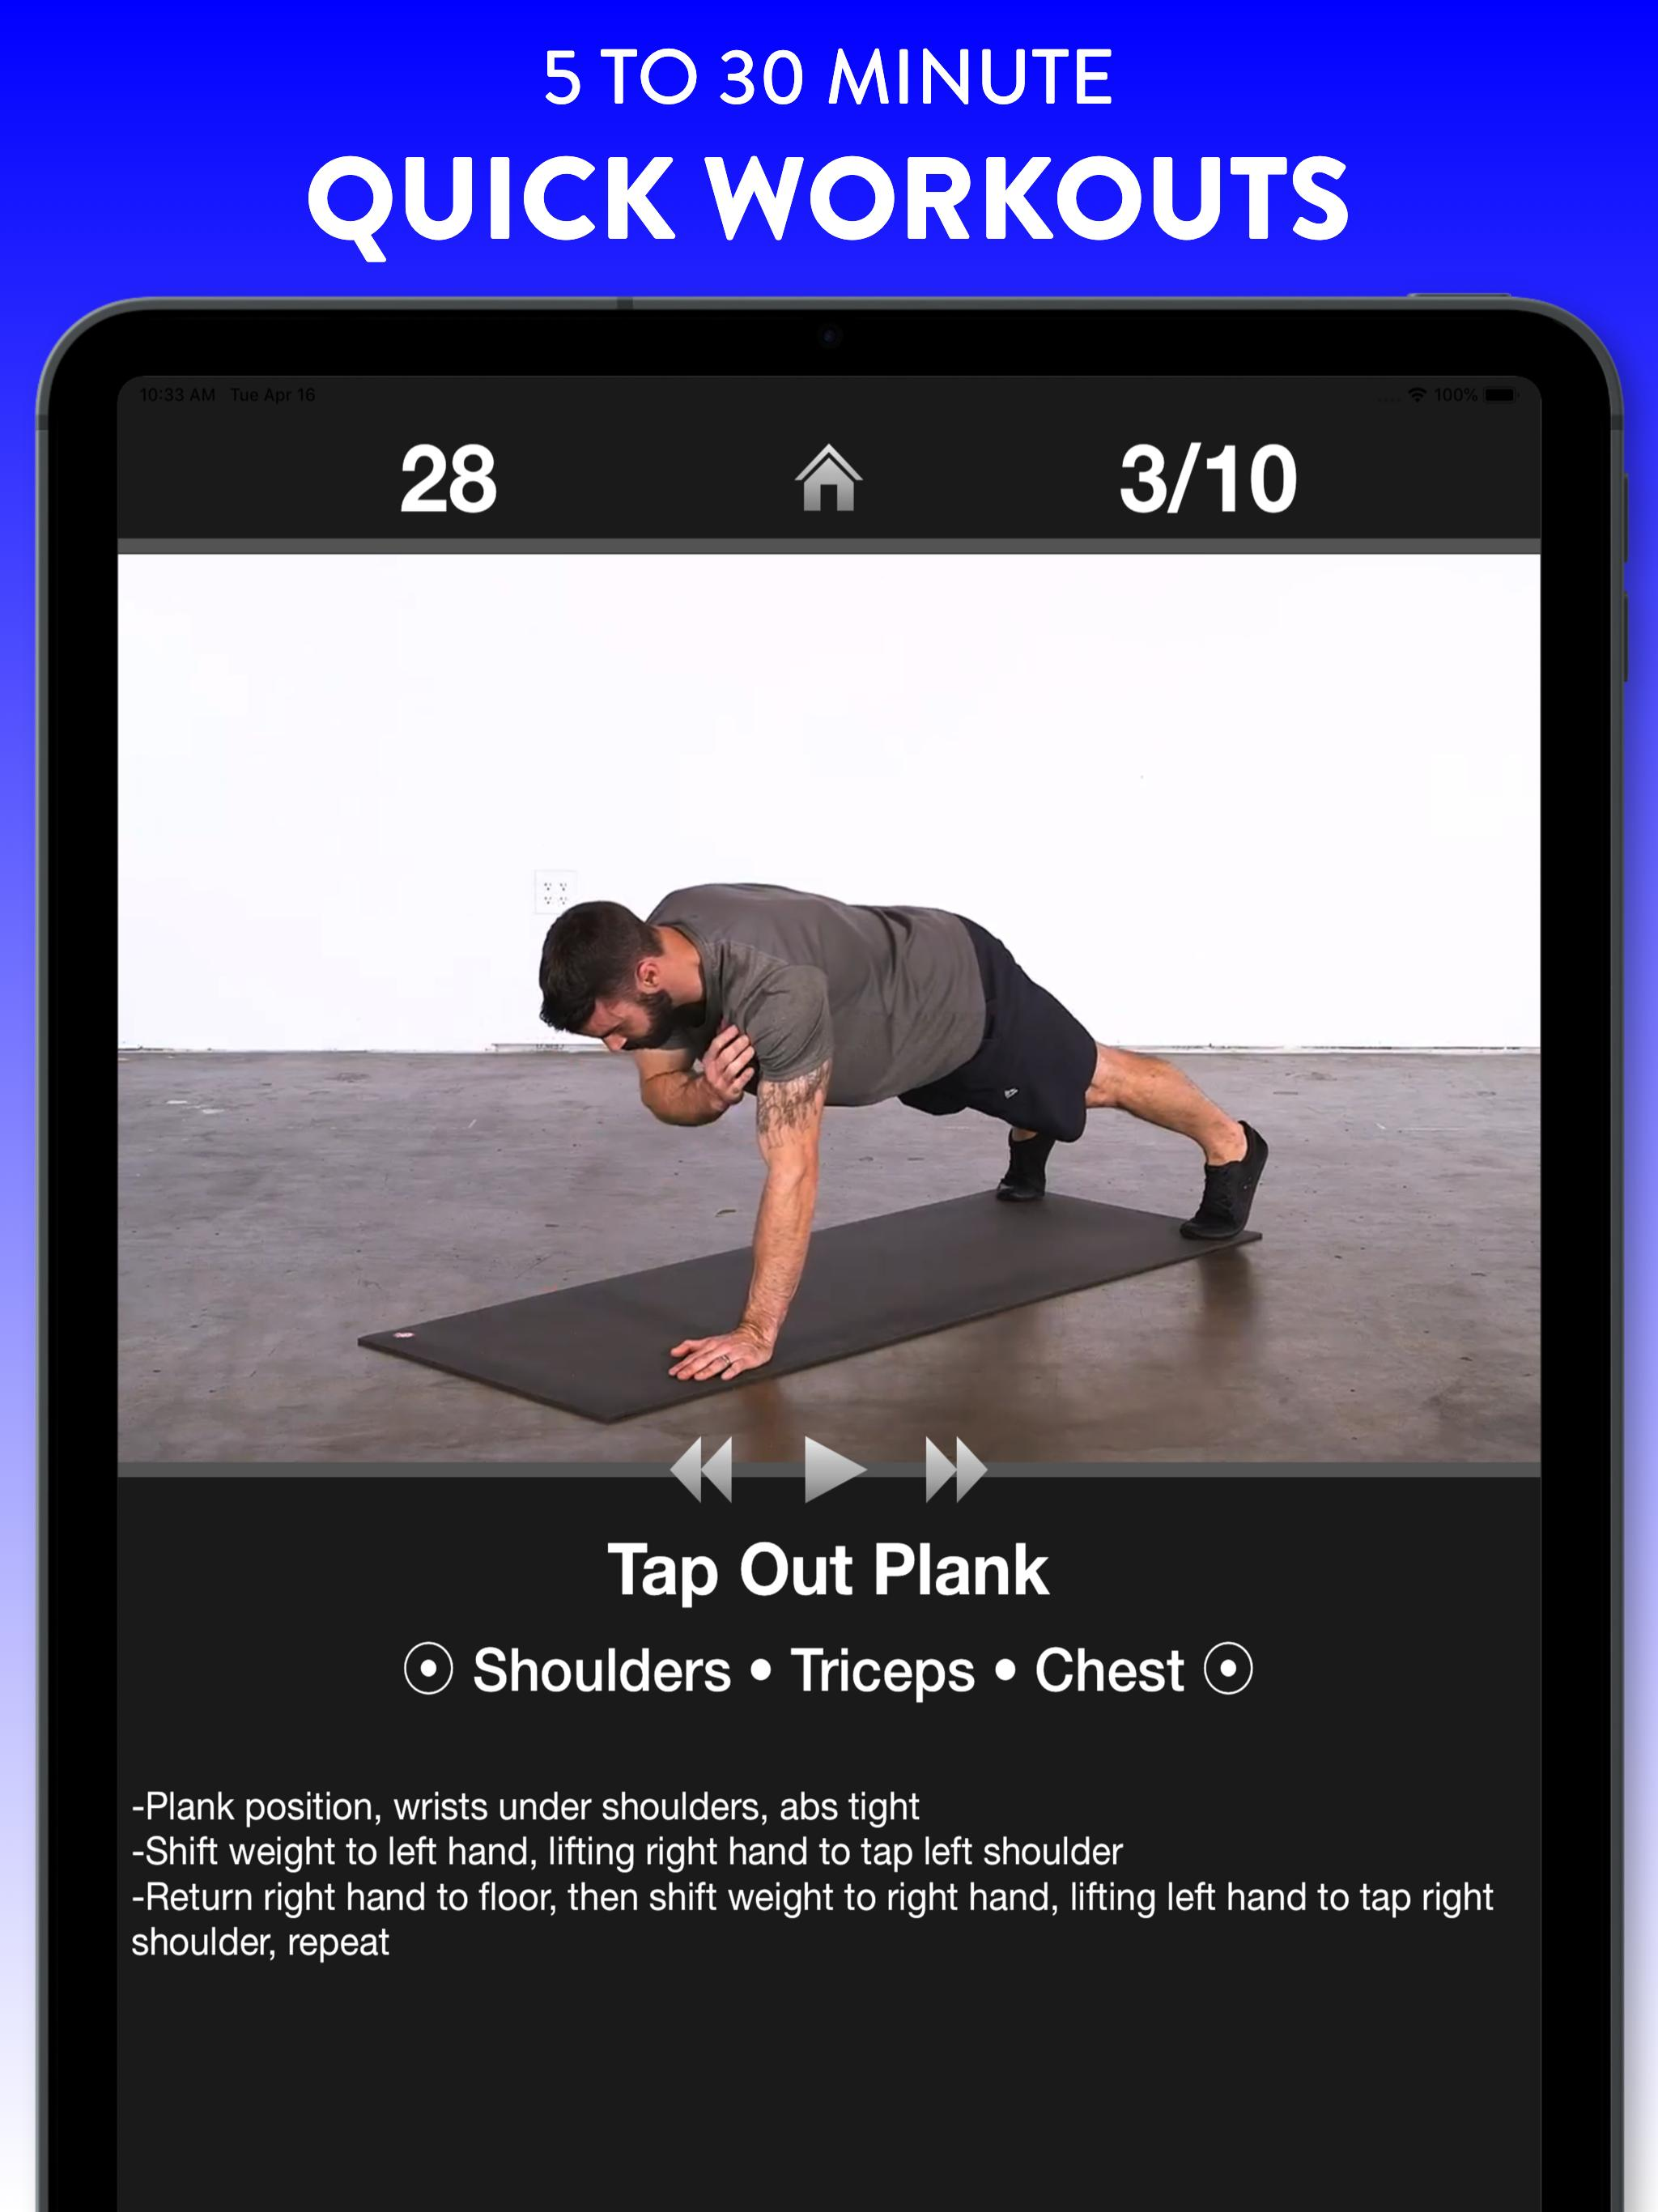 Daily Workouts - Exercise Fitness Workout Trainer 6.12 Screenshot 8